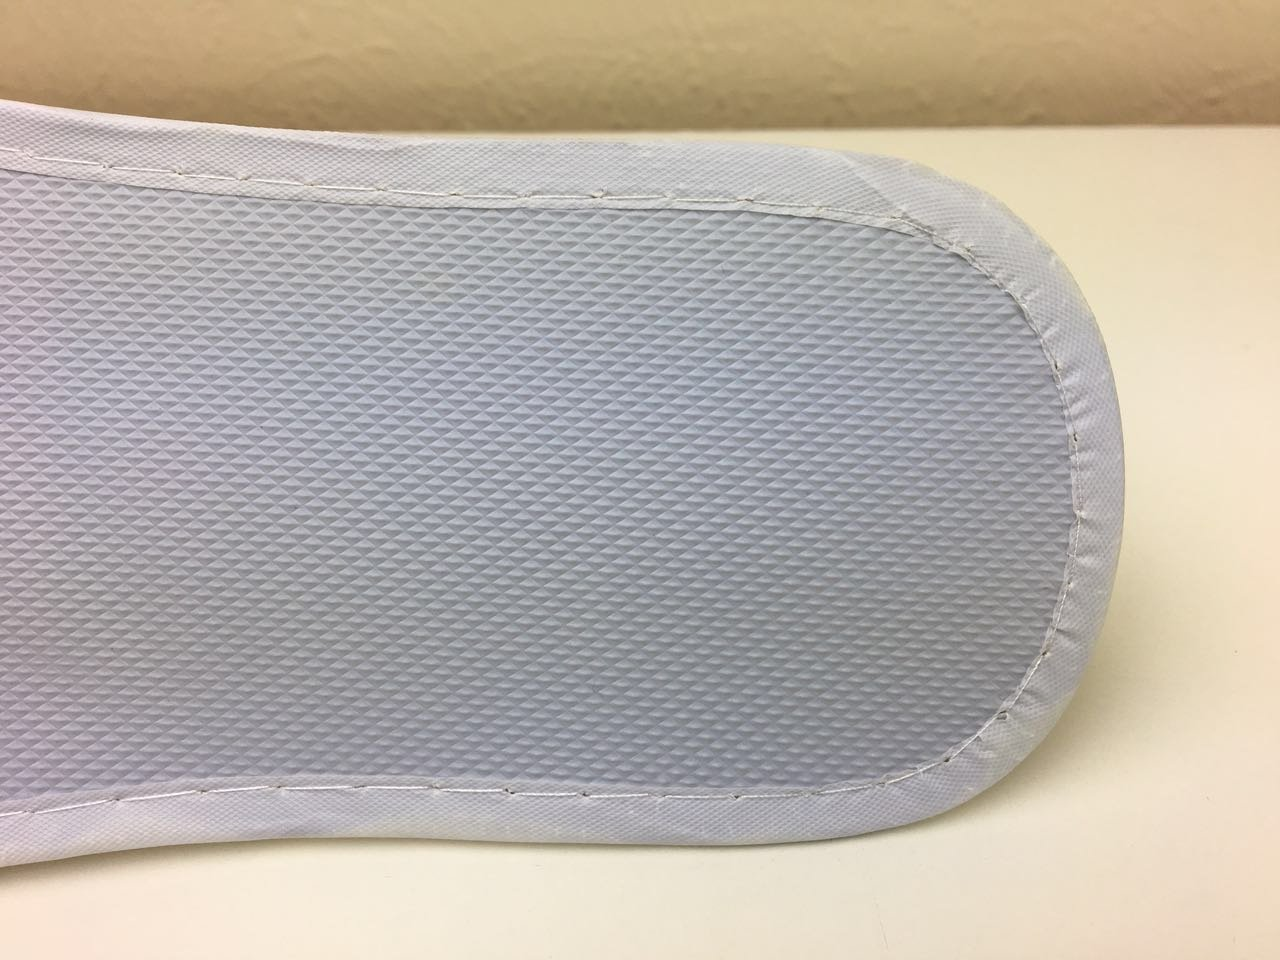 Huini Disposable Cotton Slippers Salon / SPA / Pedicure (Open Toes) 12 Pairs by HUINI